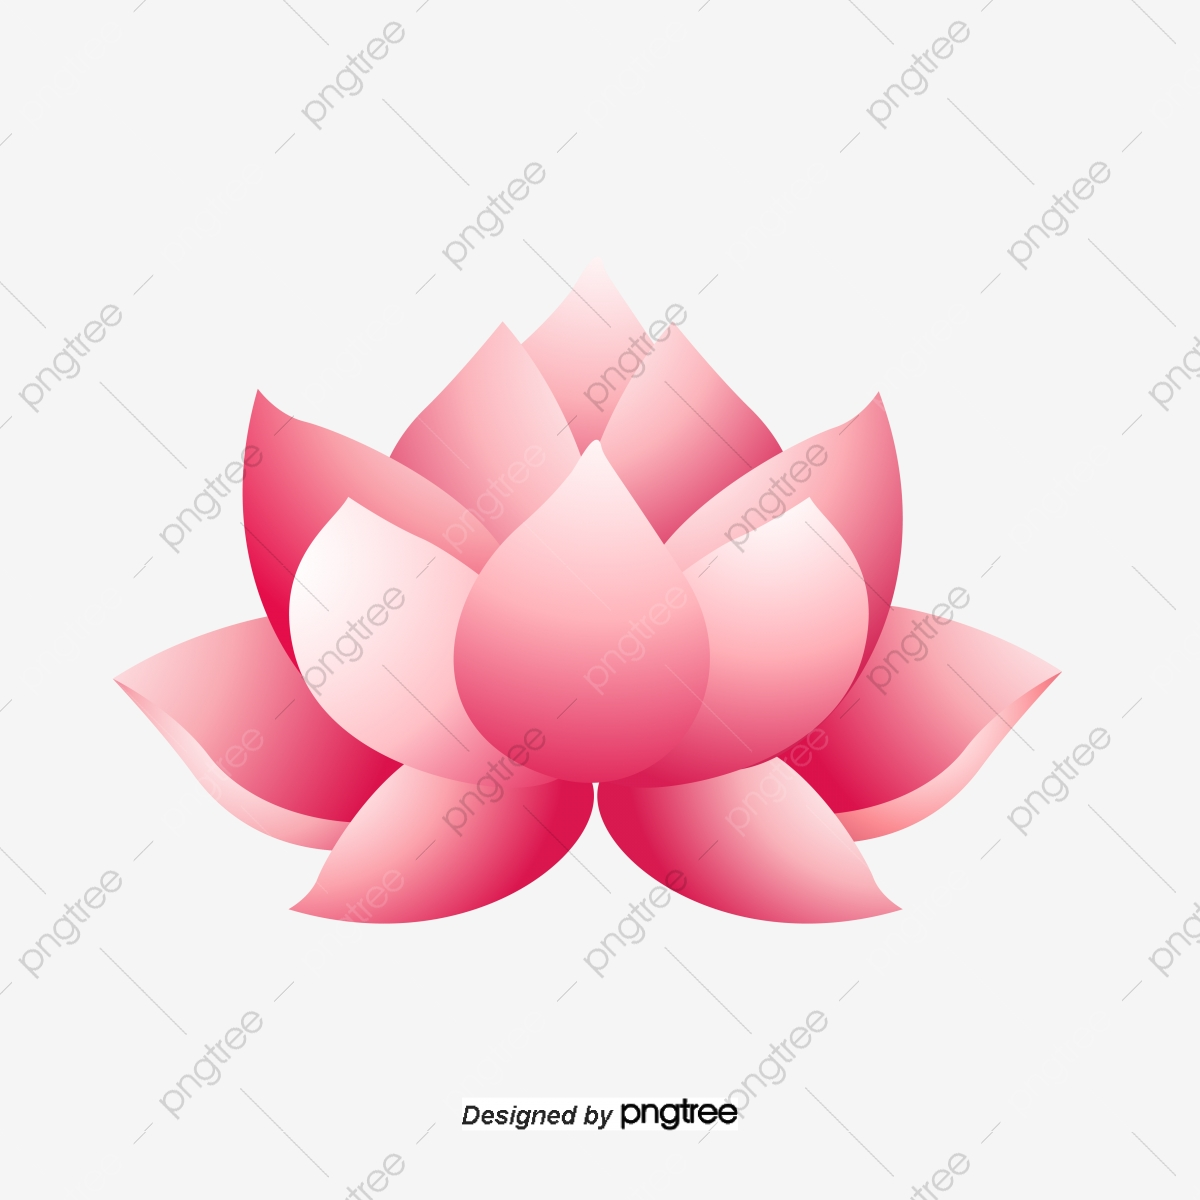 Lotus Flower Cartoon Lotus Vector Flower Vector Cartoon Vector